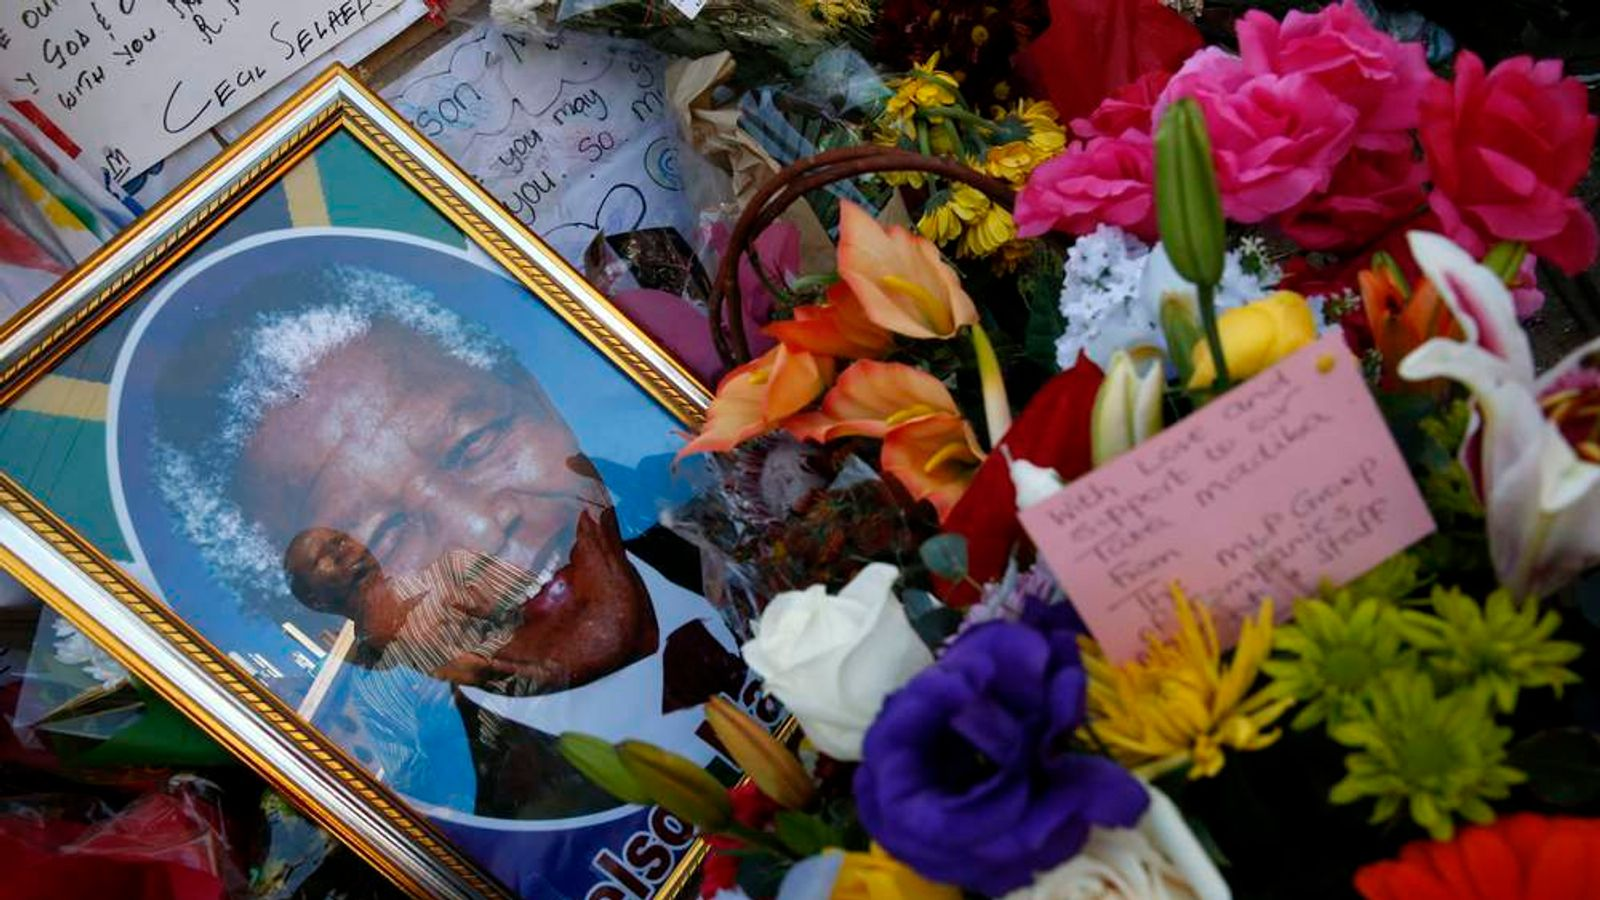 A well-wisher is reflected in a glass outside the hospital where Mandela is being treated in Pretoria